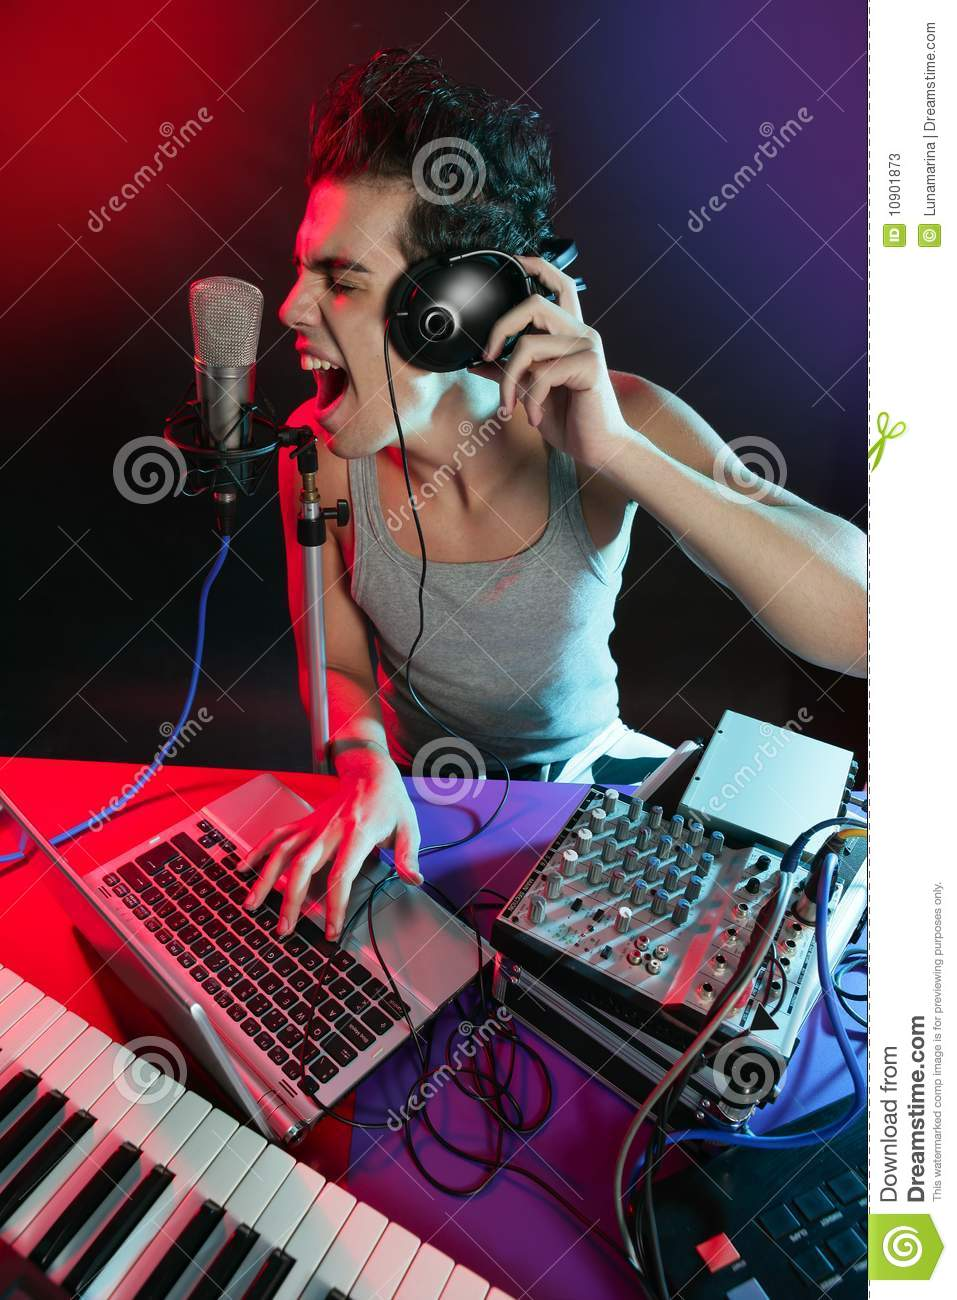 dj with colorful light and music mixing equipment stock photos image 10901873. Black Bedroom Furniture Sets. Home Design Ideas